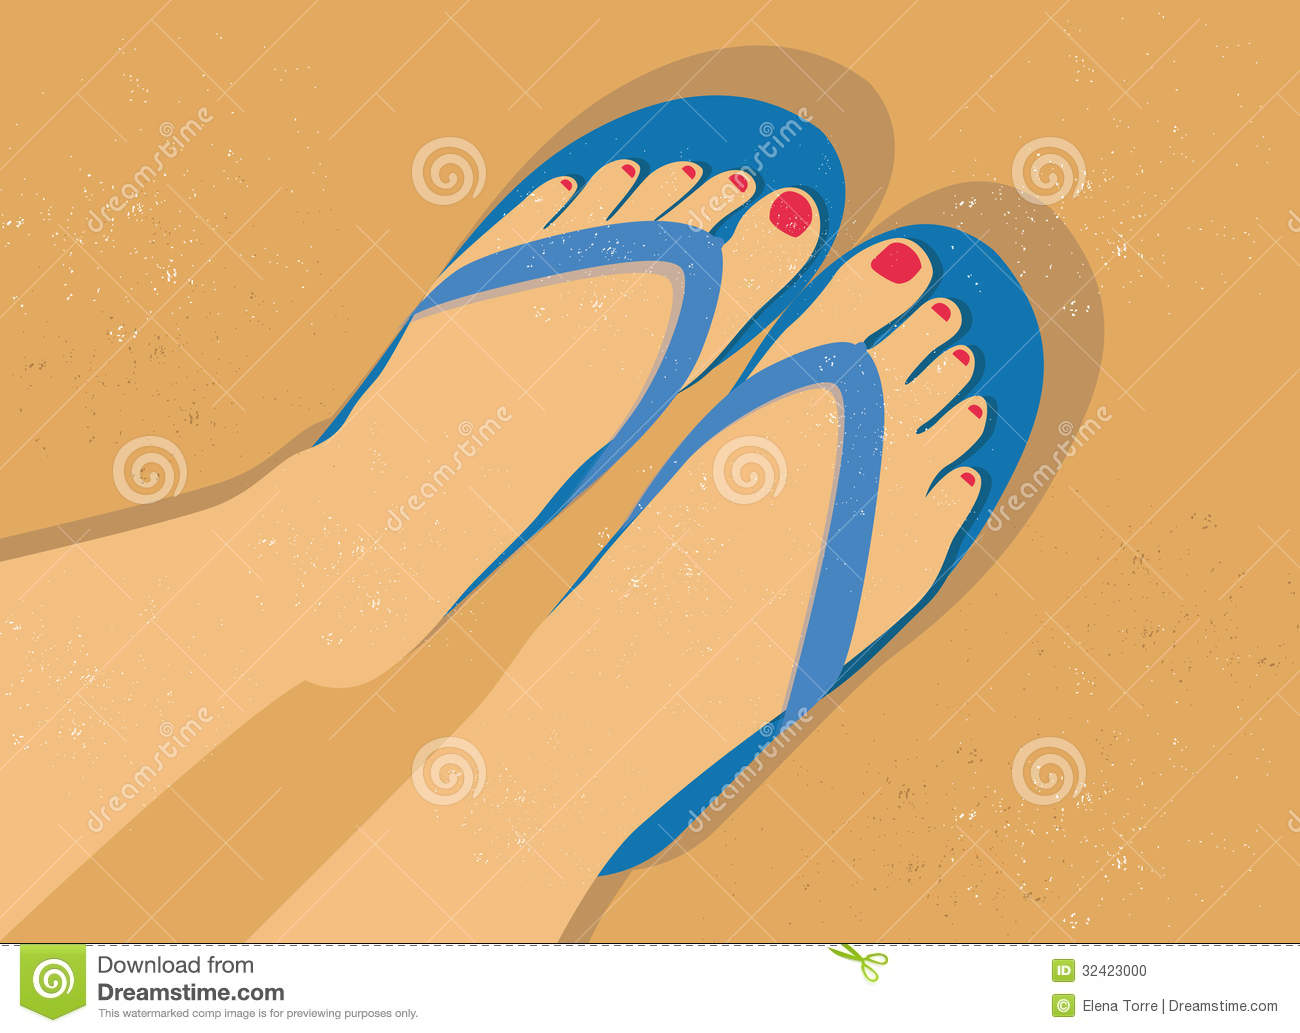 7f105ade76fd1 Flip flop sandals on the beach. Vector illustration of woman feet and flip- flop